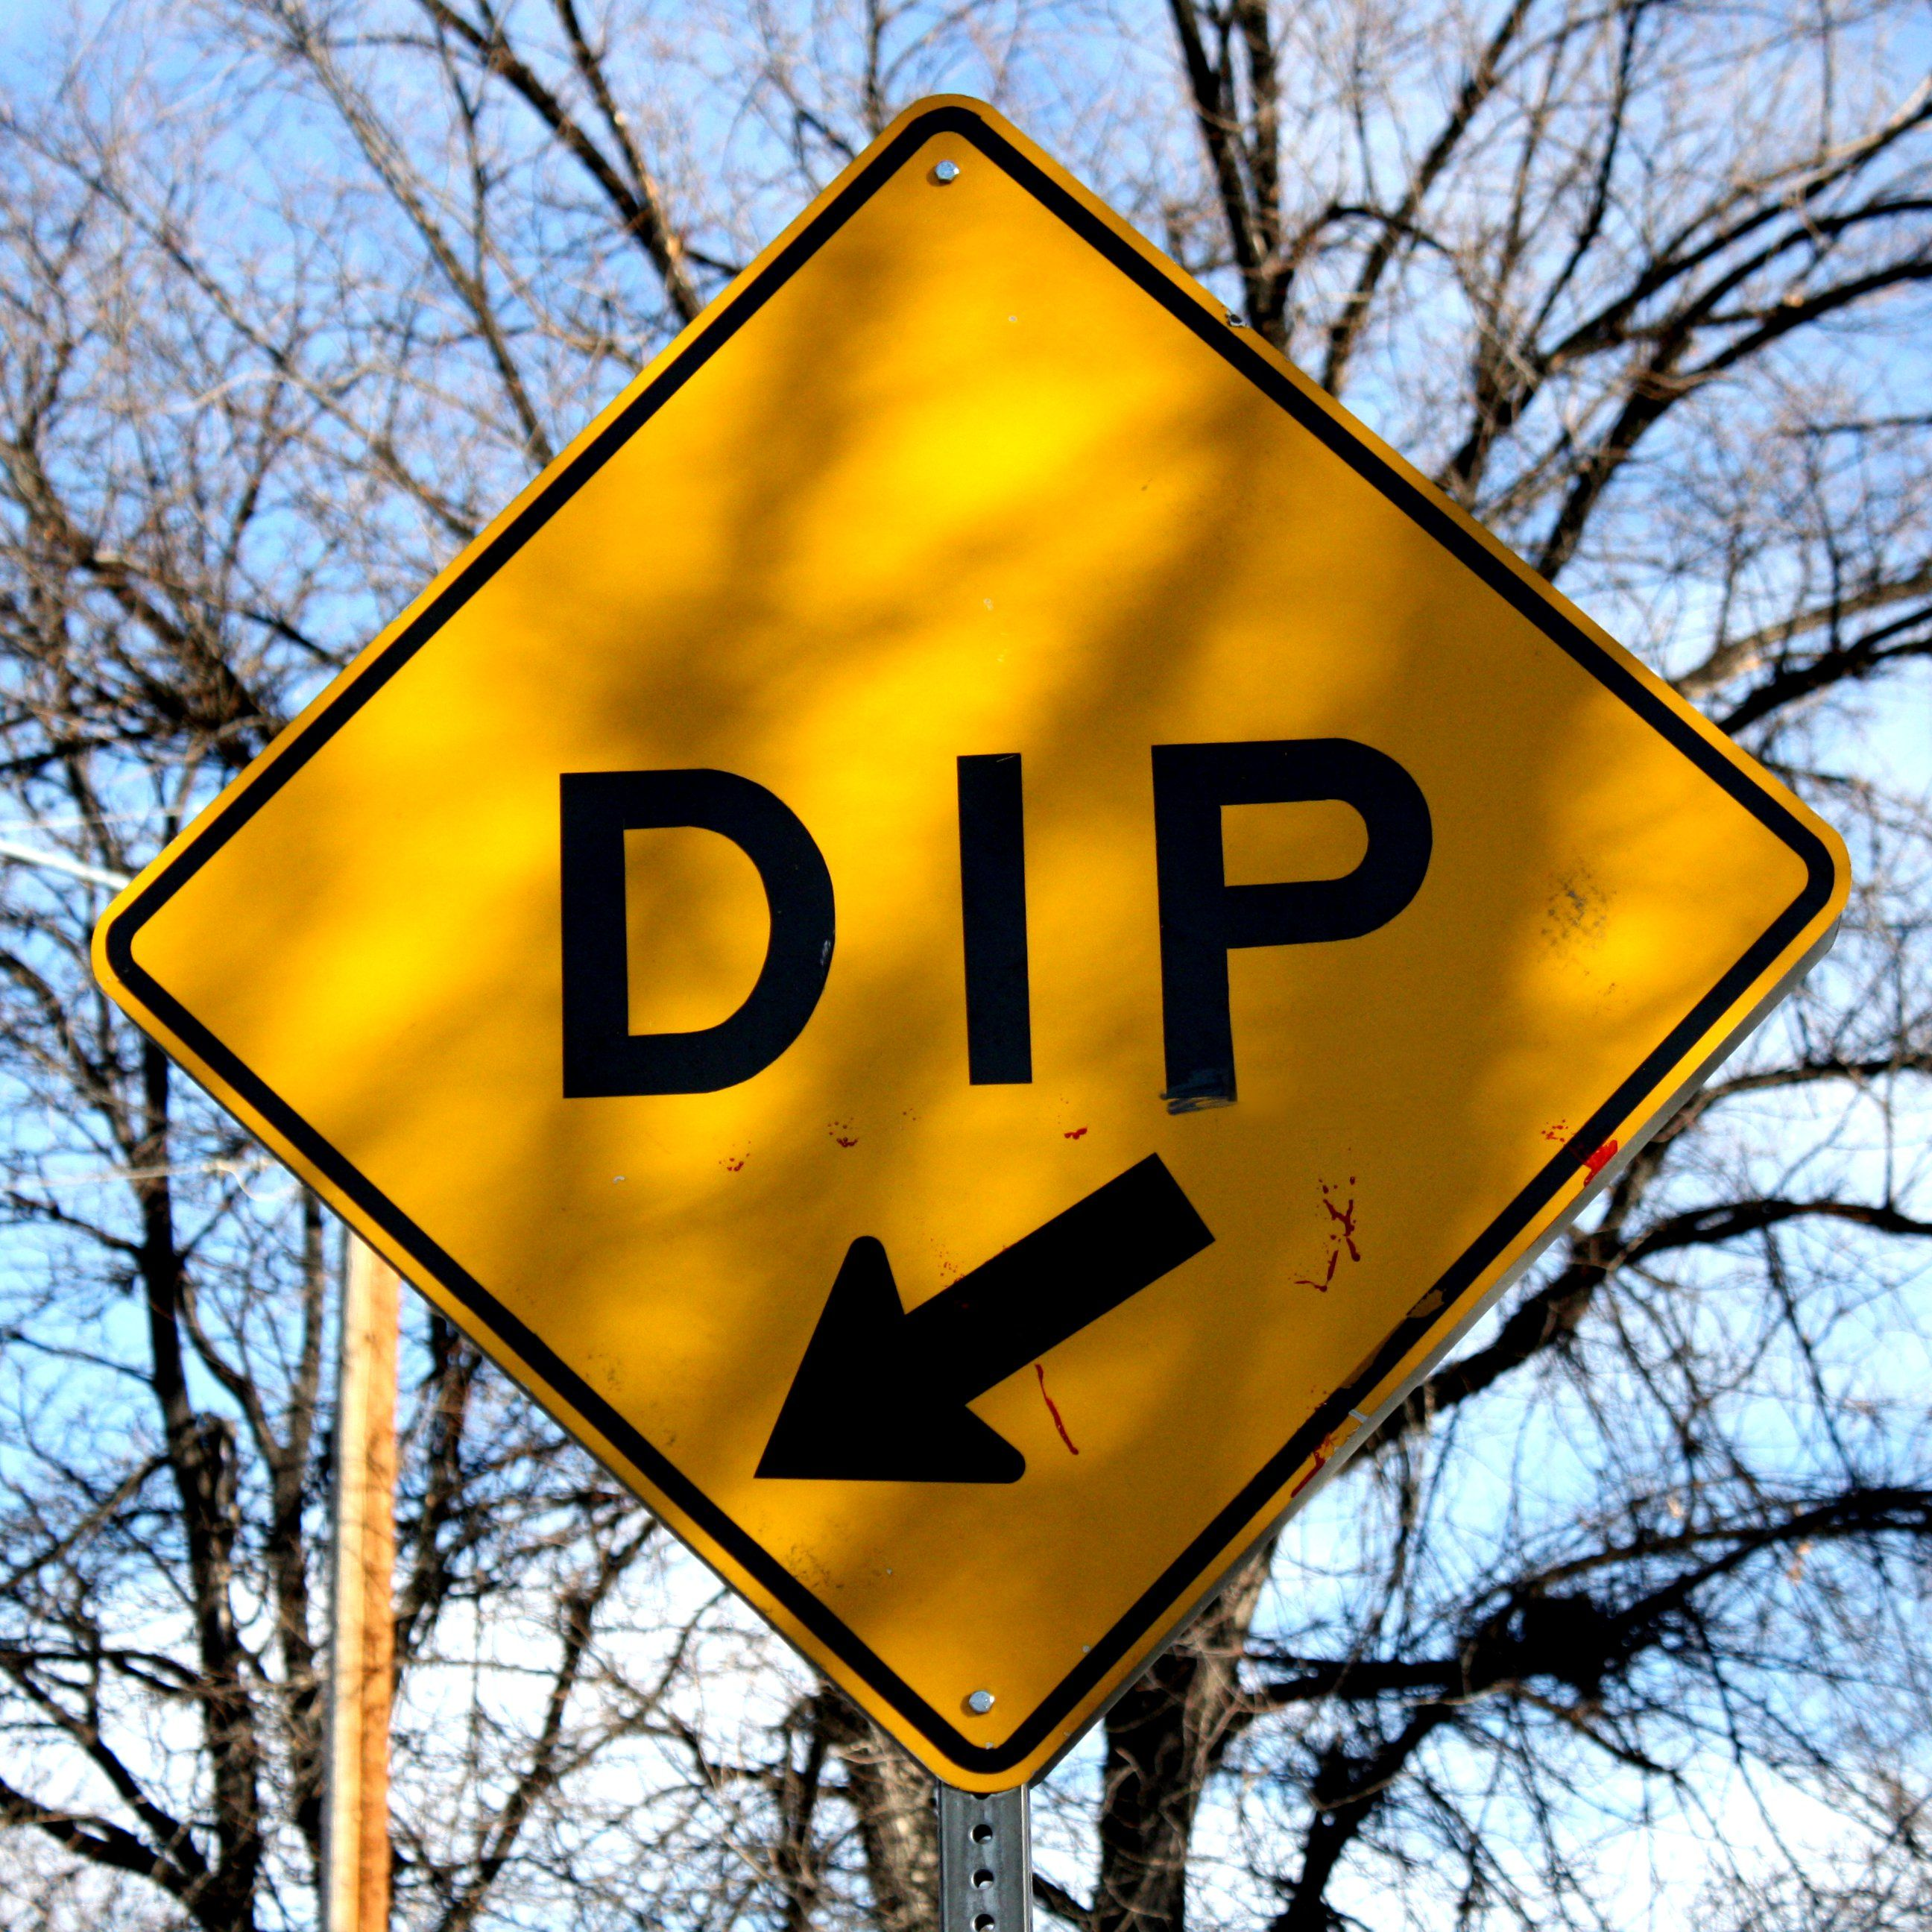 REAL DIP STREET TRAFFIC SIGN